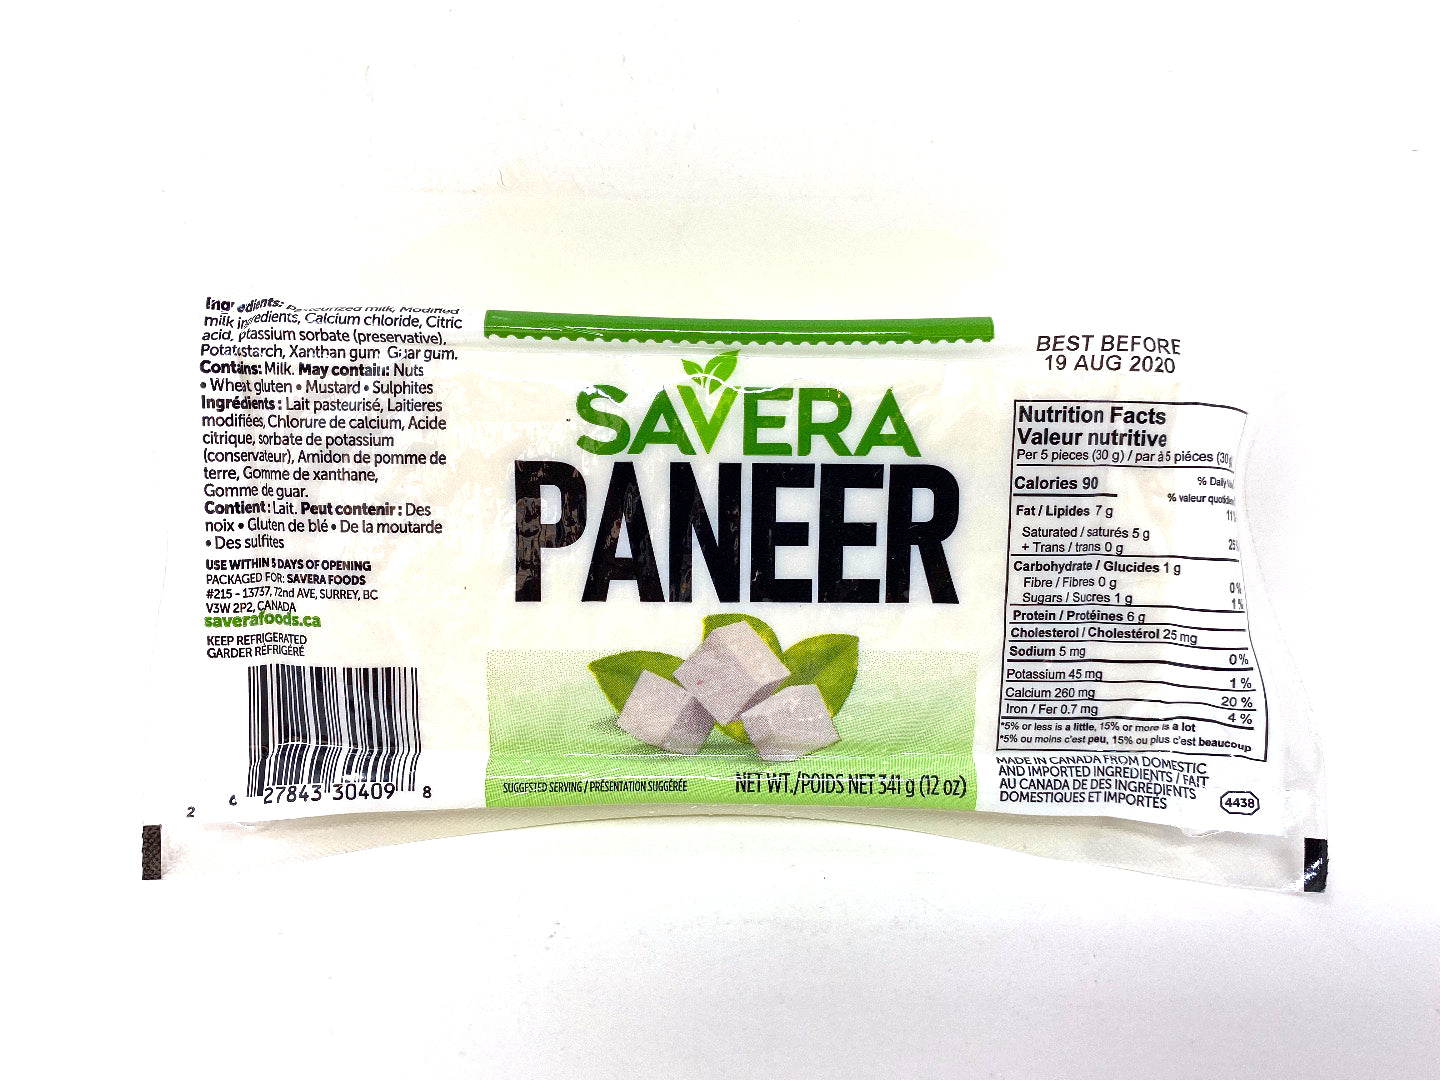 Savera Fresh Paneer